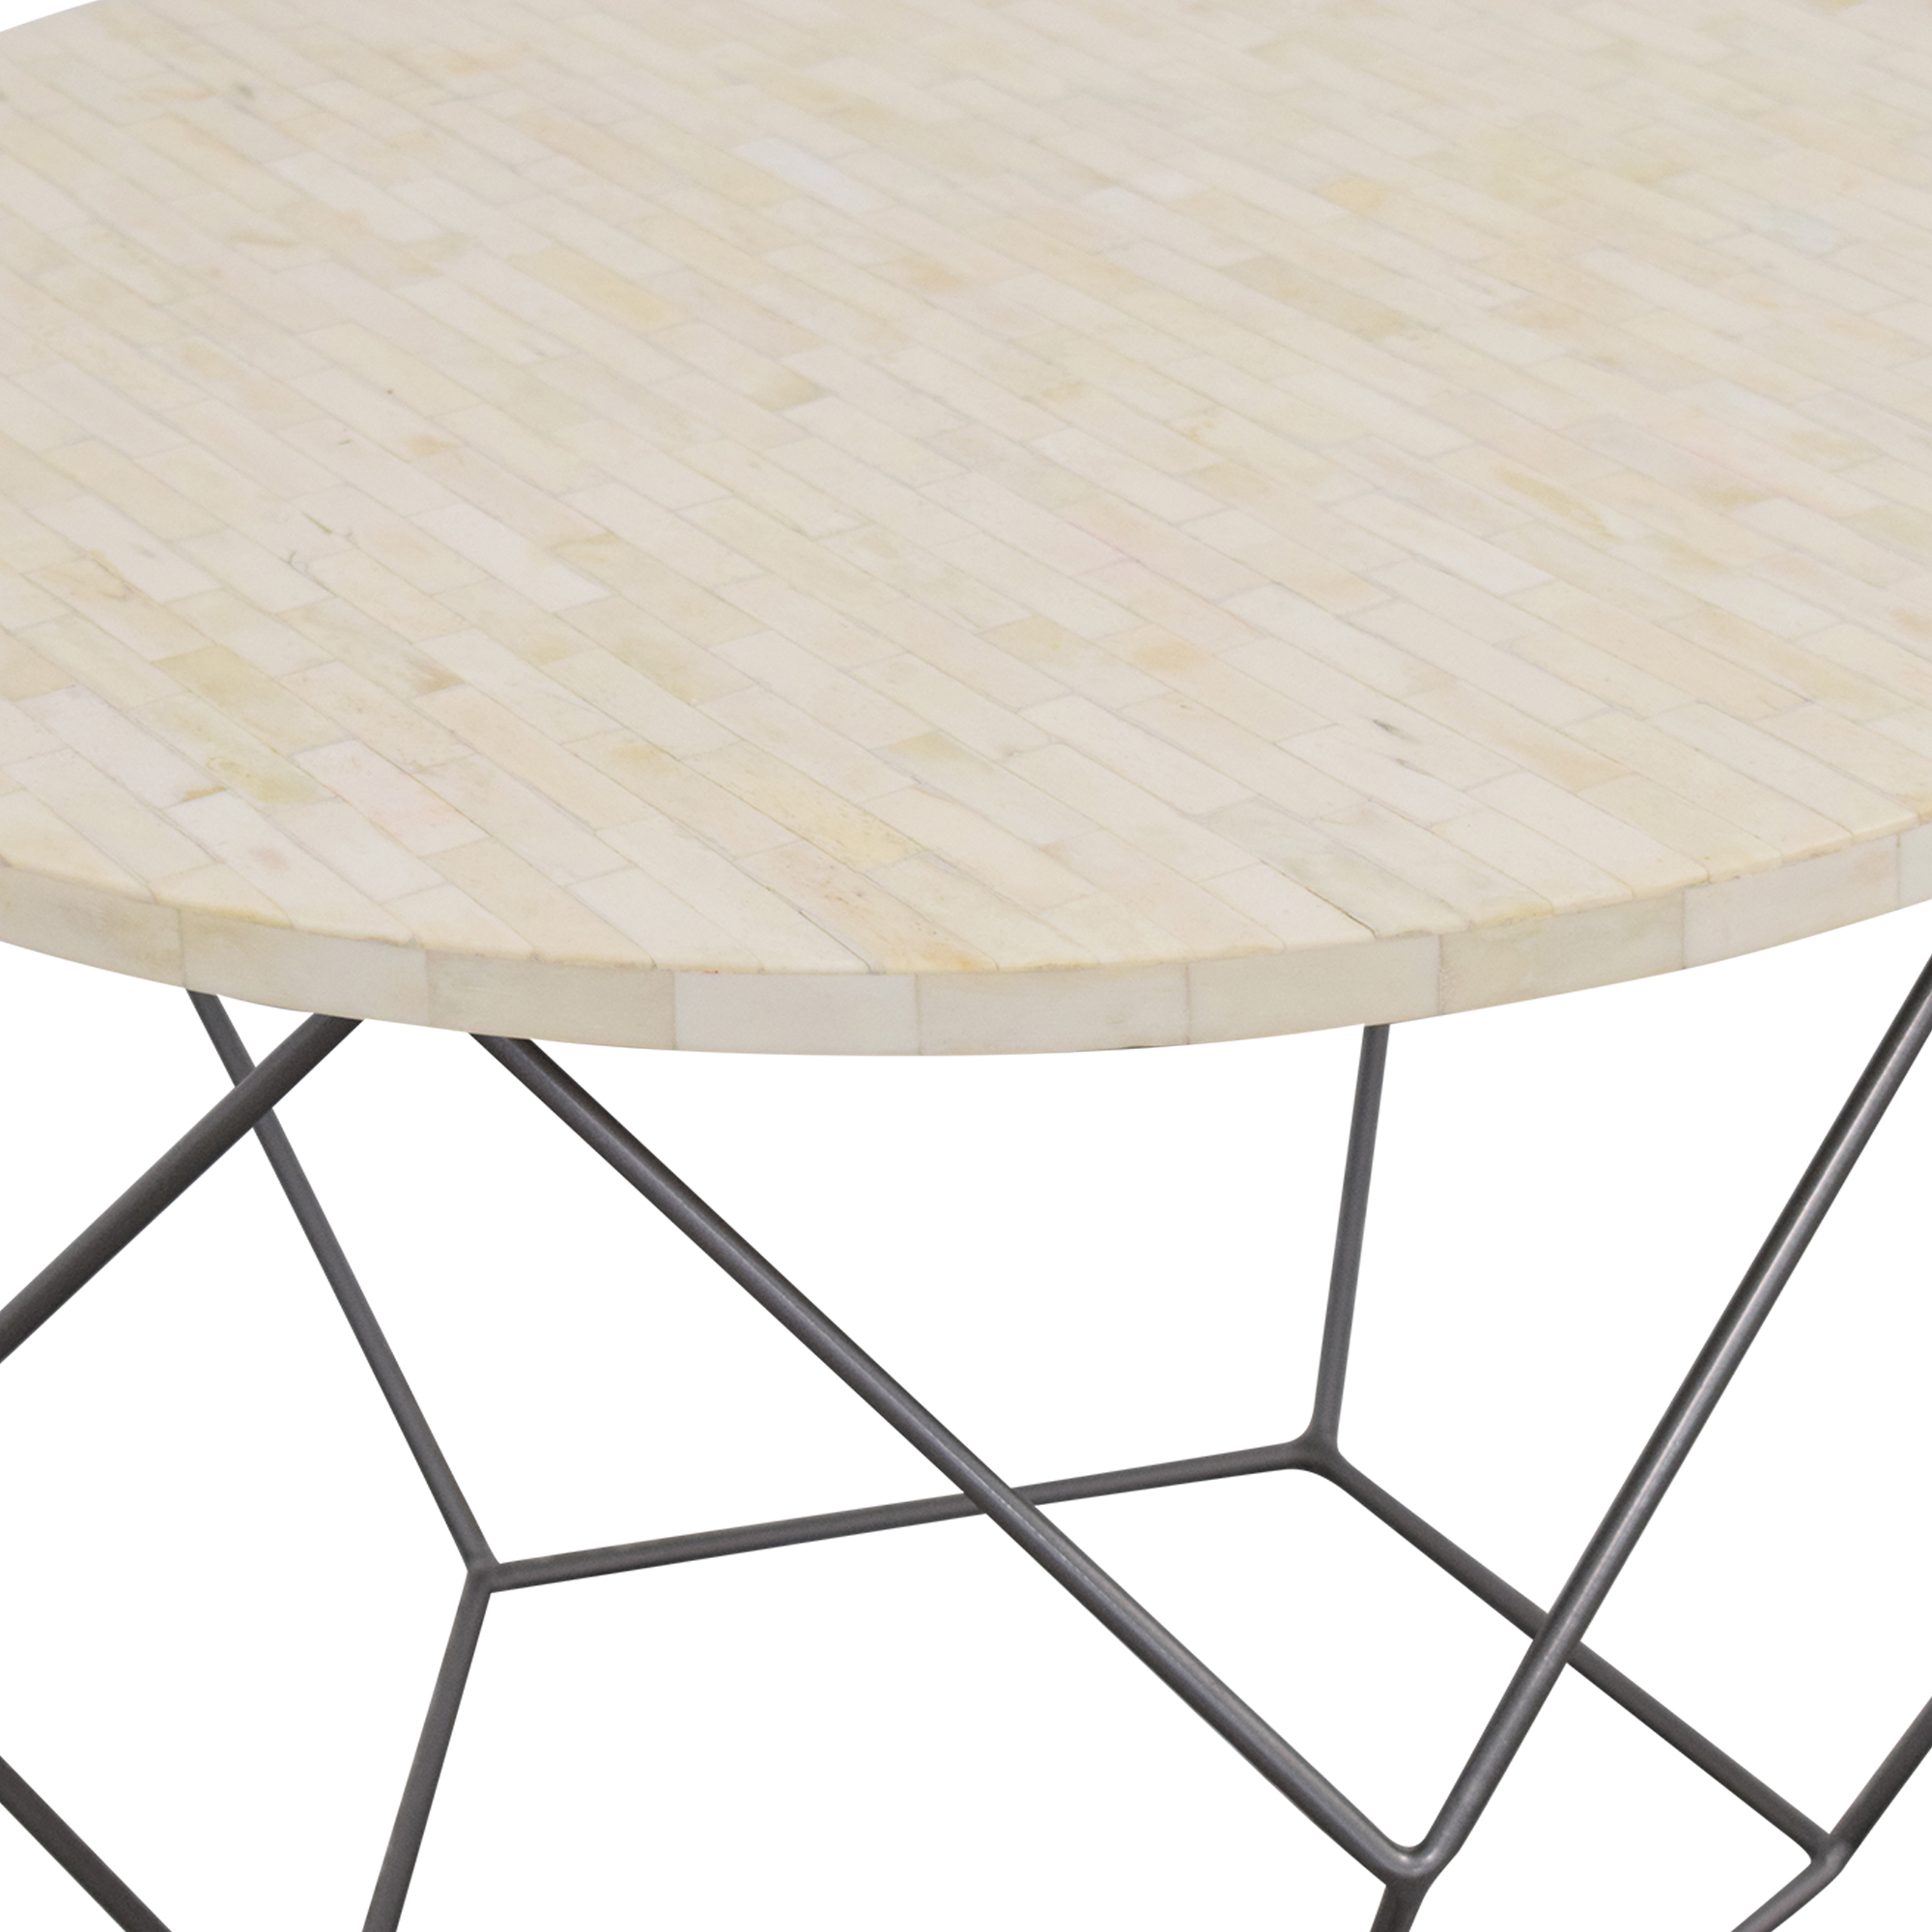 West Elm Origami Coffee Table sale